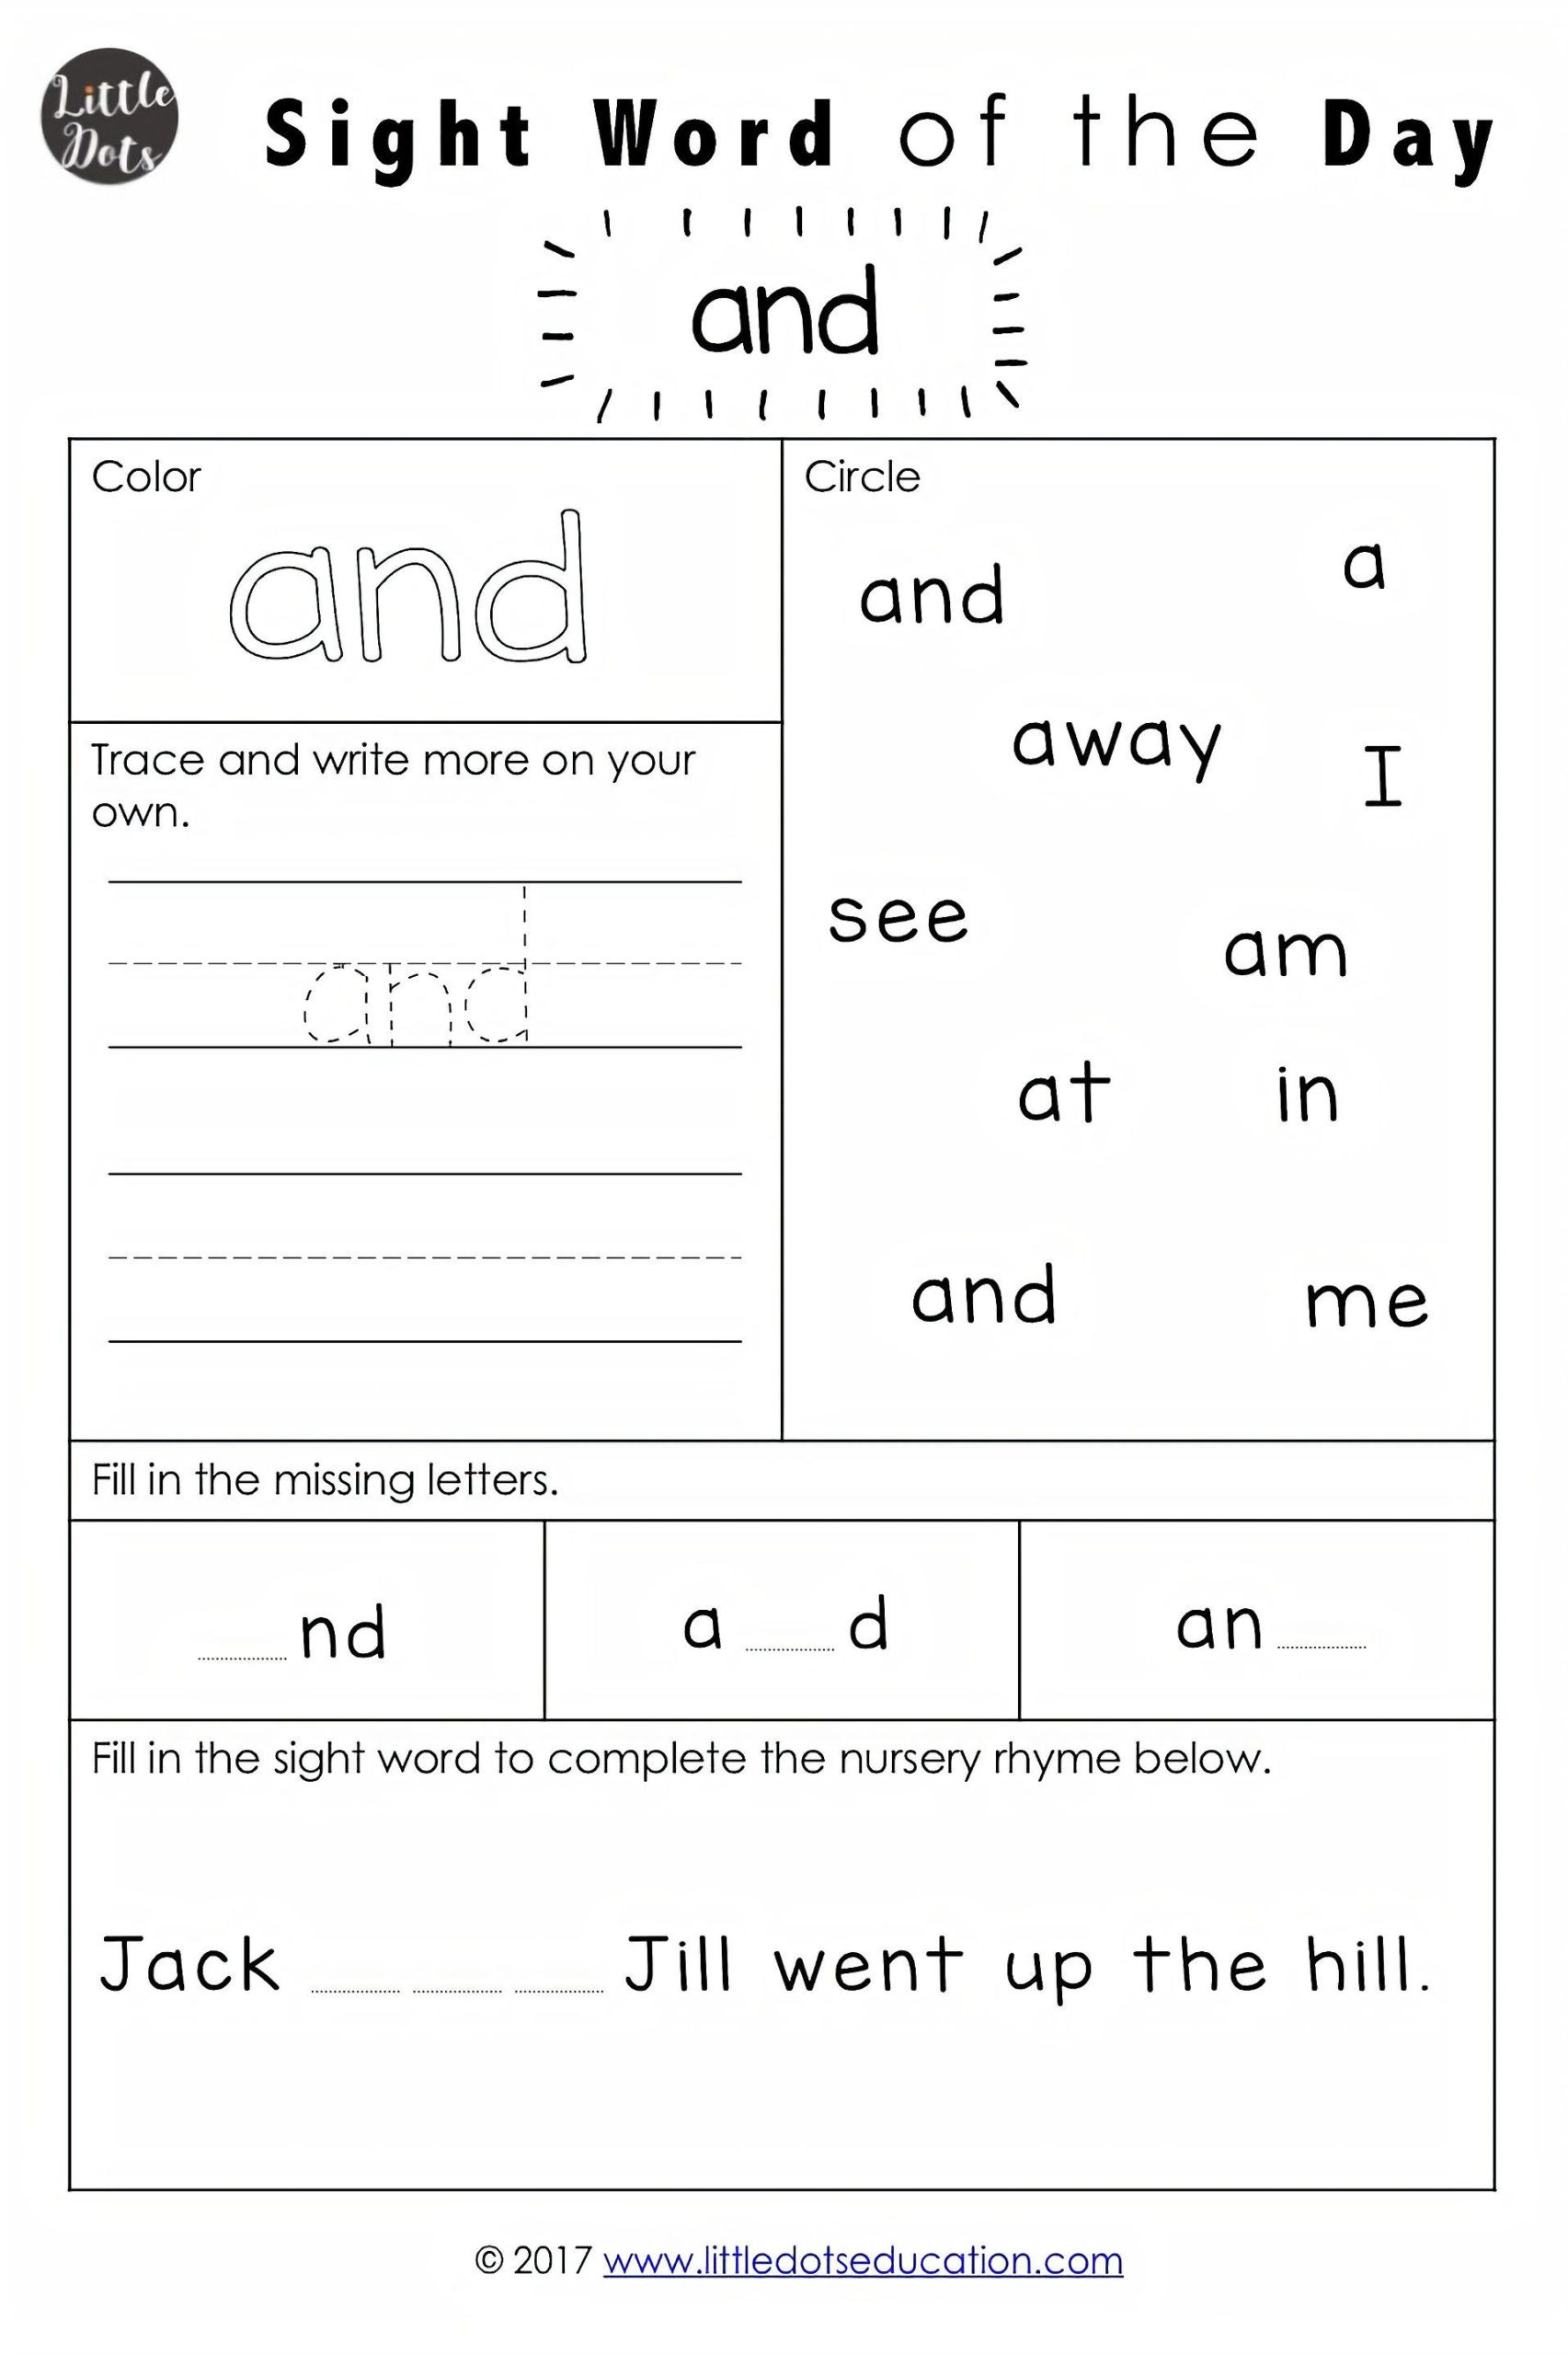 Second Grade Sight Words Worksheets Dolch Pre Primer Sight Words Activities with Word